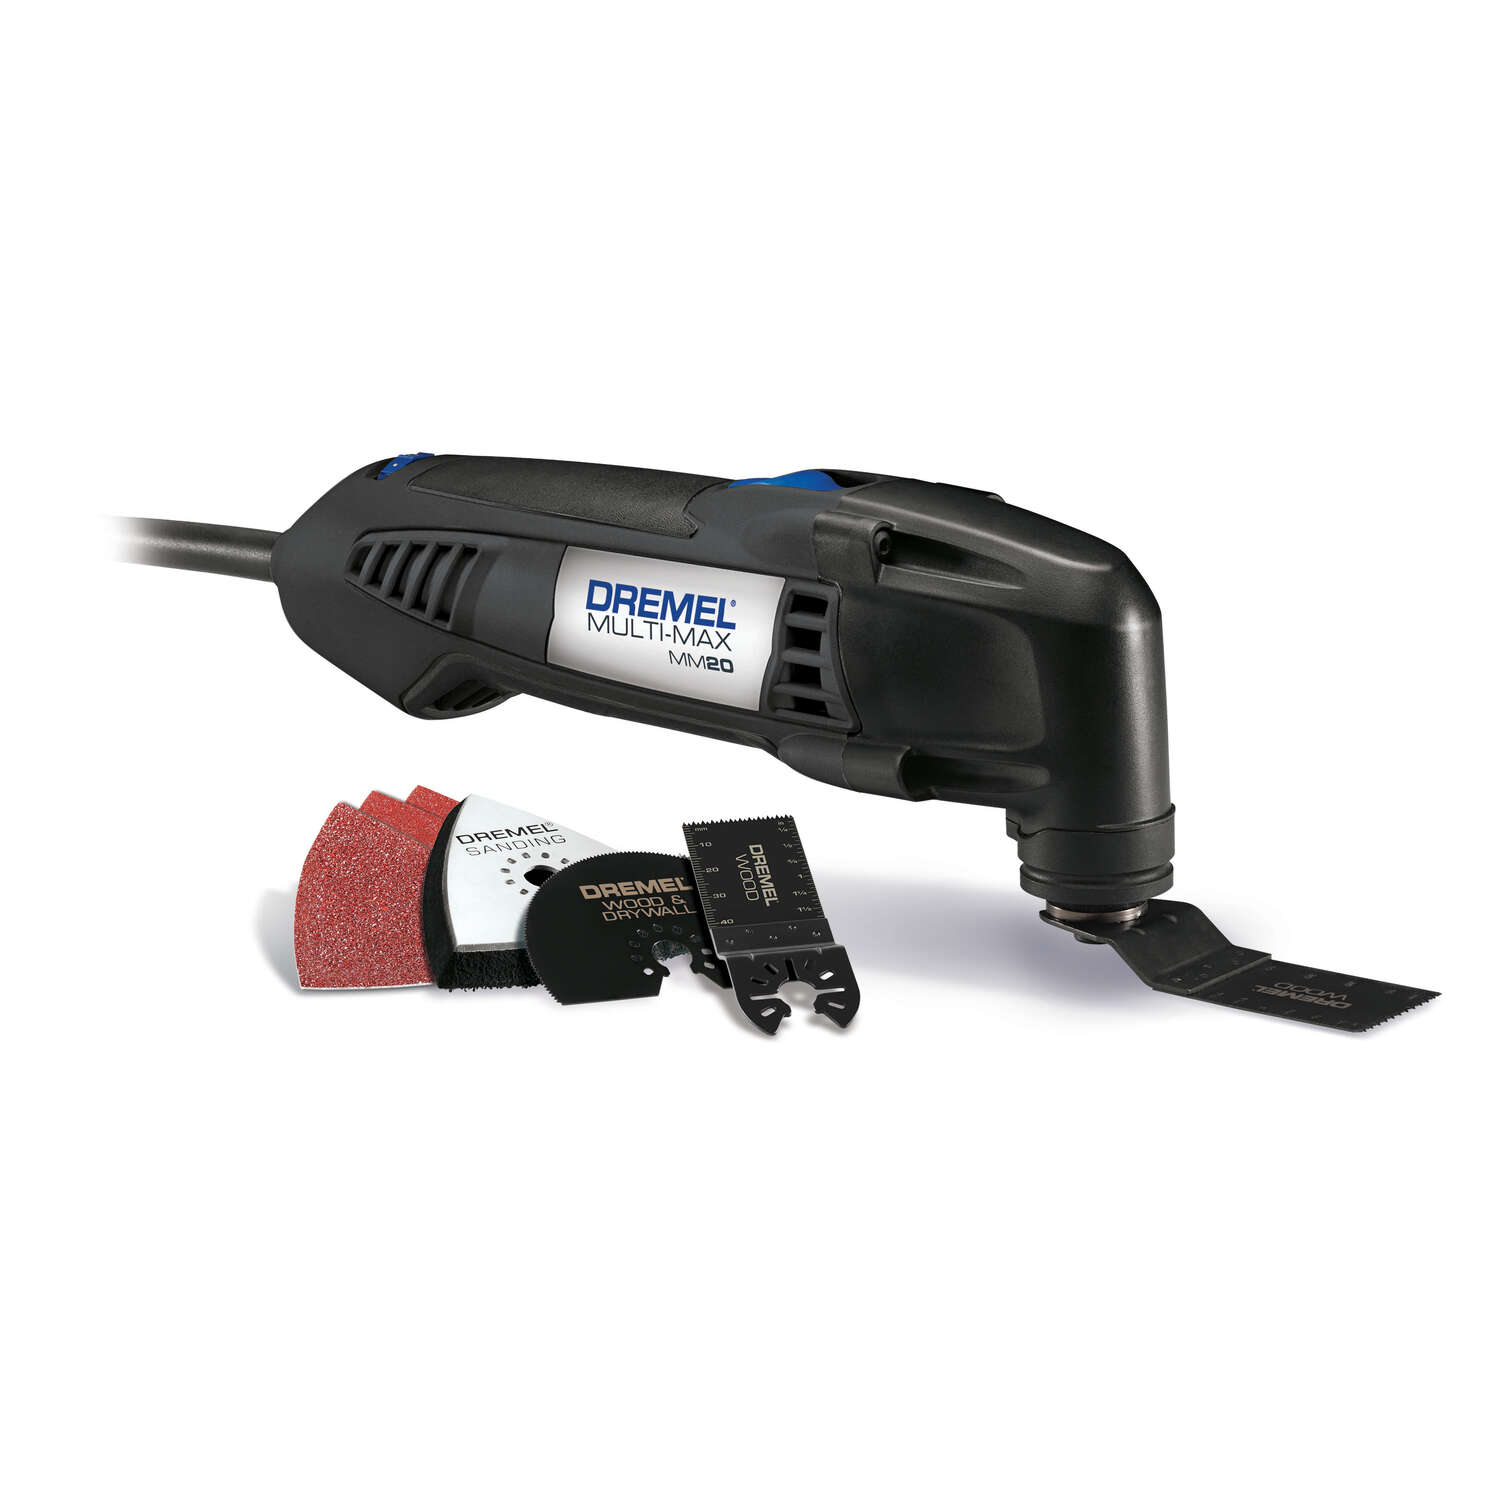 Dremel  Multi-Max  2.3 amps 120 volt Corded  Oscillating Tool  Kit 21000 opm Gray  7 pc.